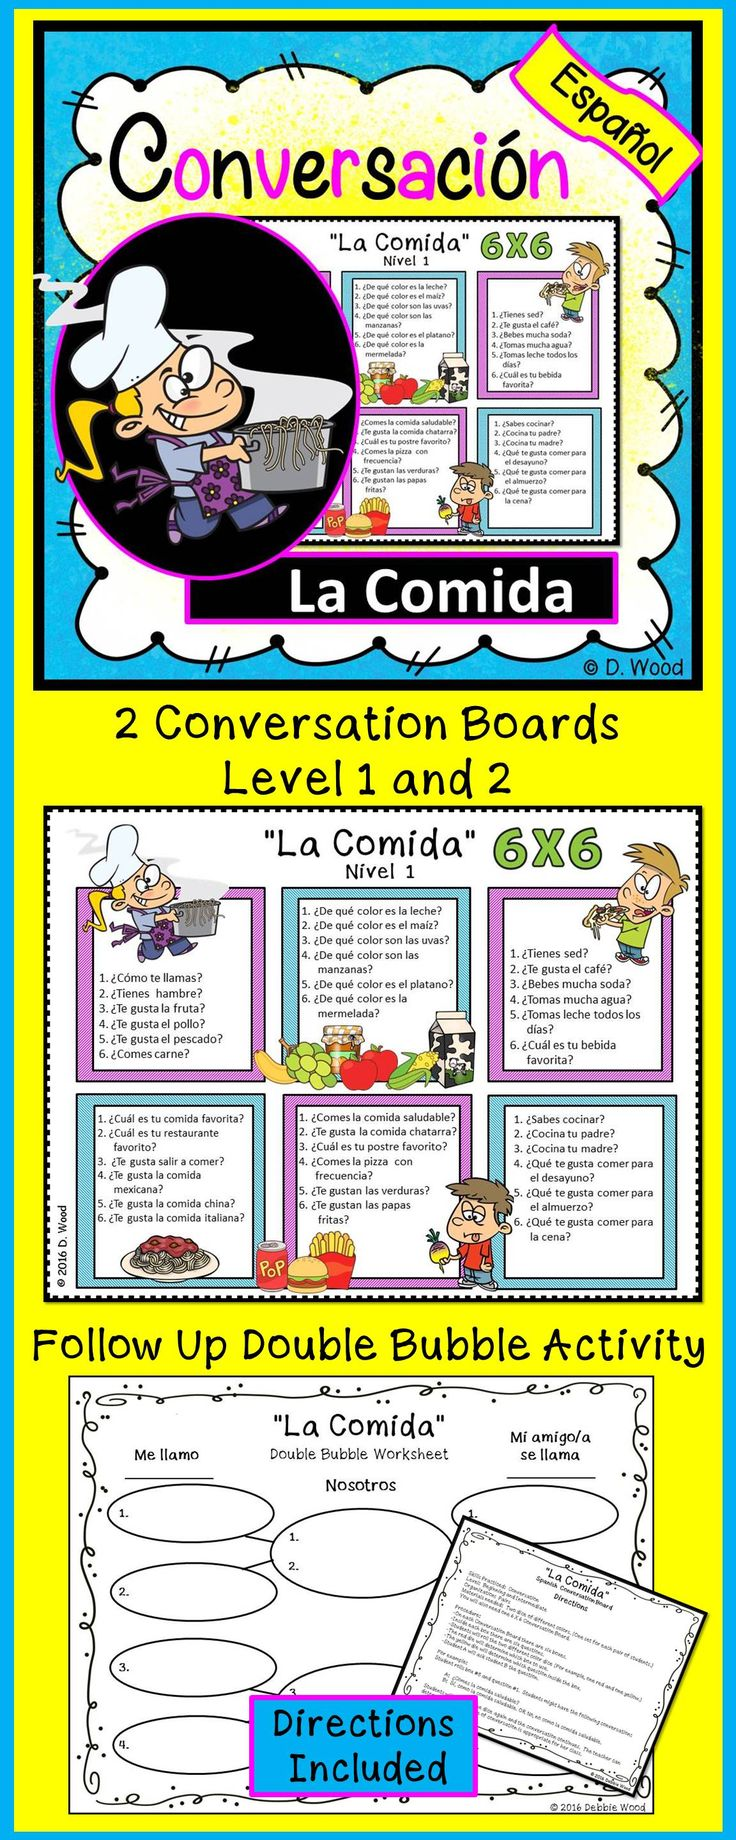 Spanish Conversation Boards on Food:  A fun, an engaging activity for students to communicate in the target language.